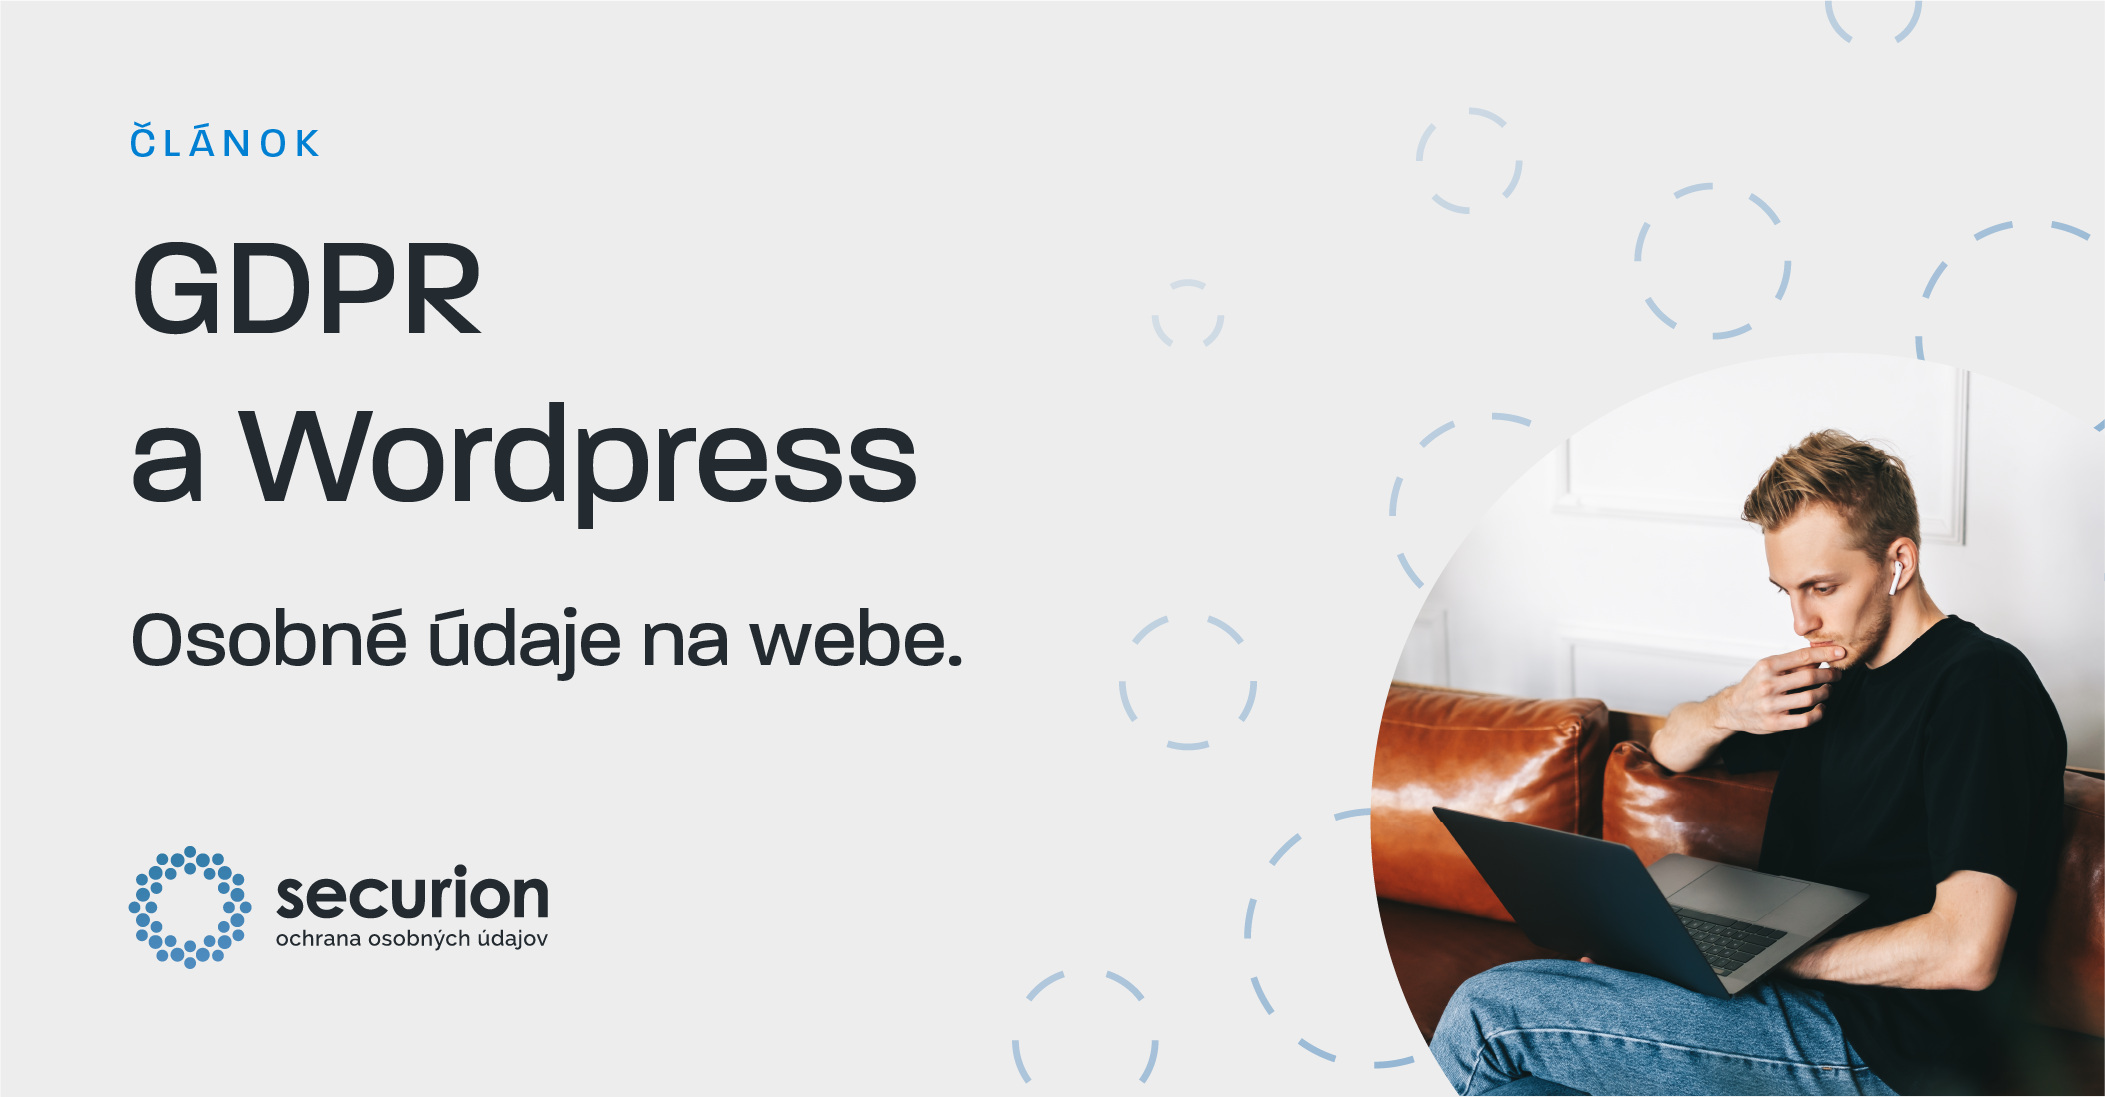 GDPR a WordPress